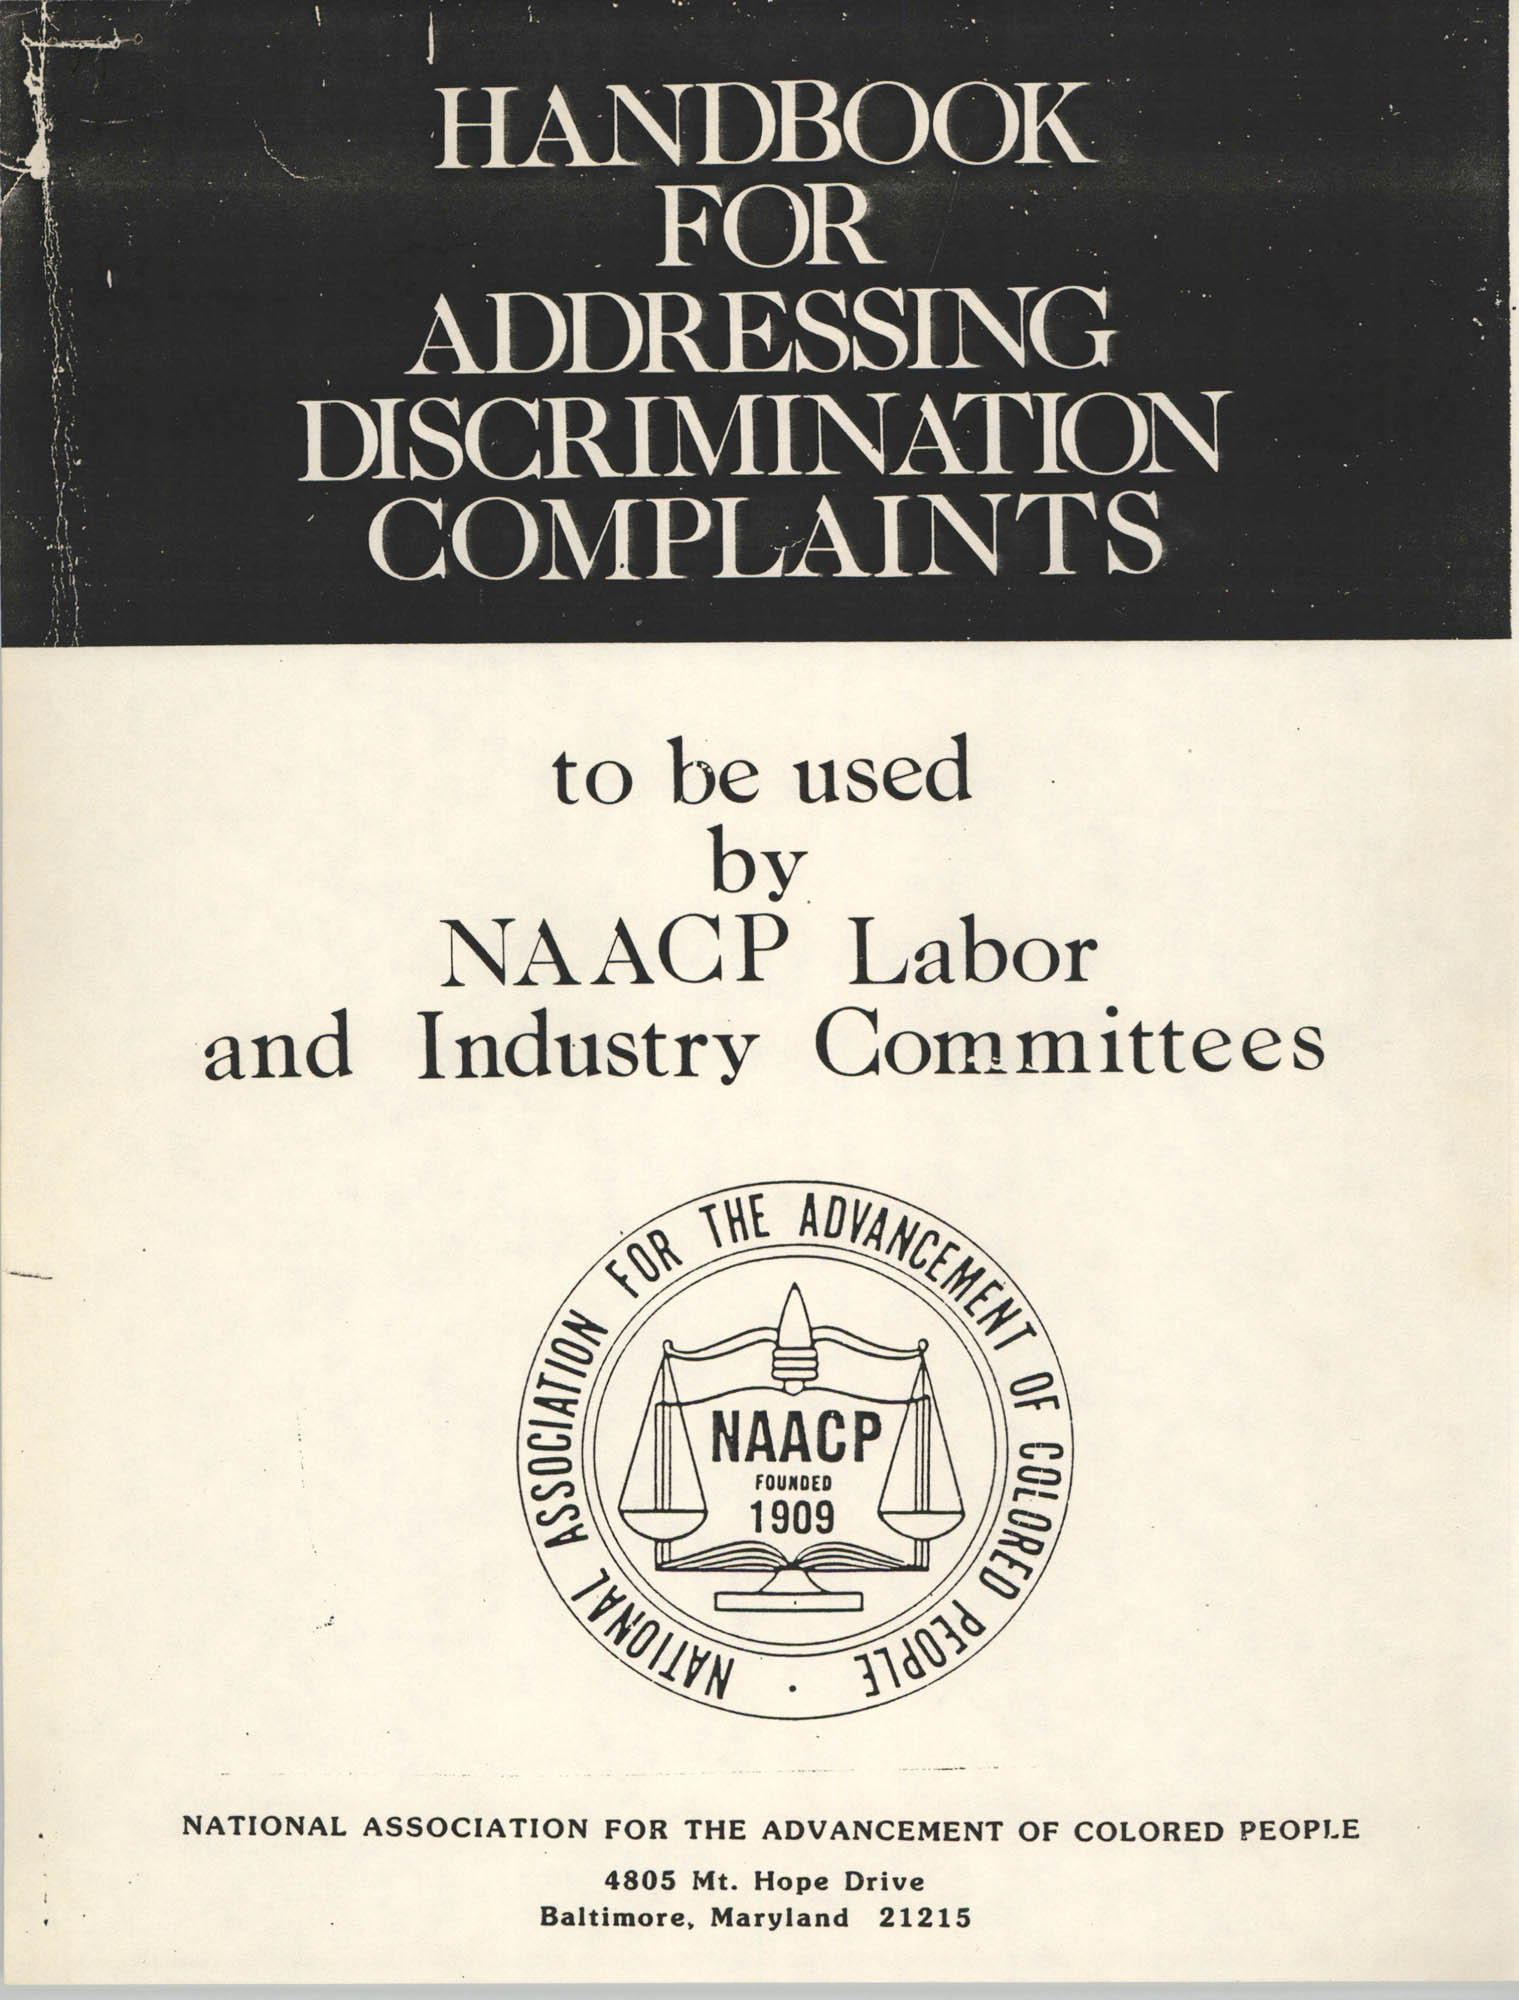 Handbook for Addressing Discrimination Complaints, NAACP Labor and Industry Committees, Cover Exterior